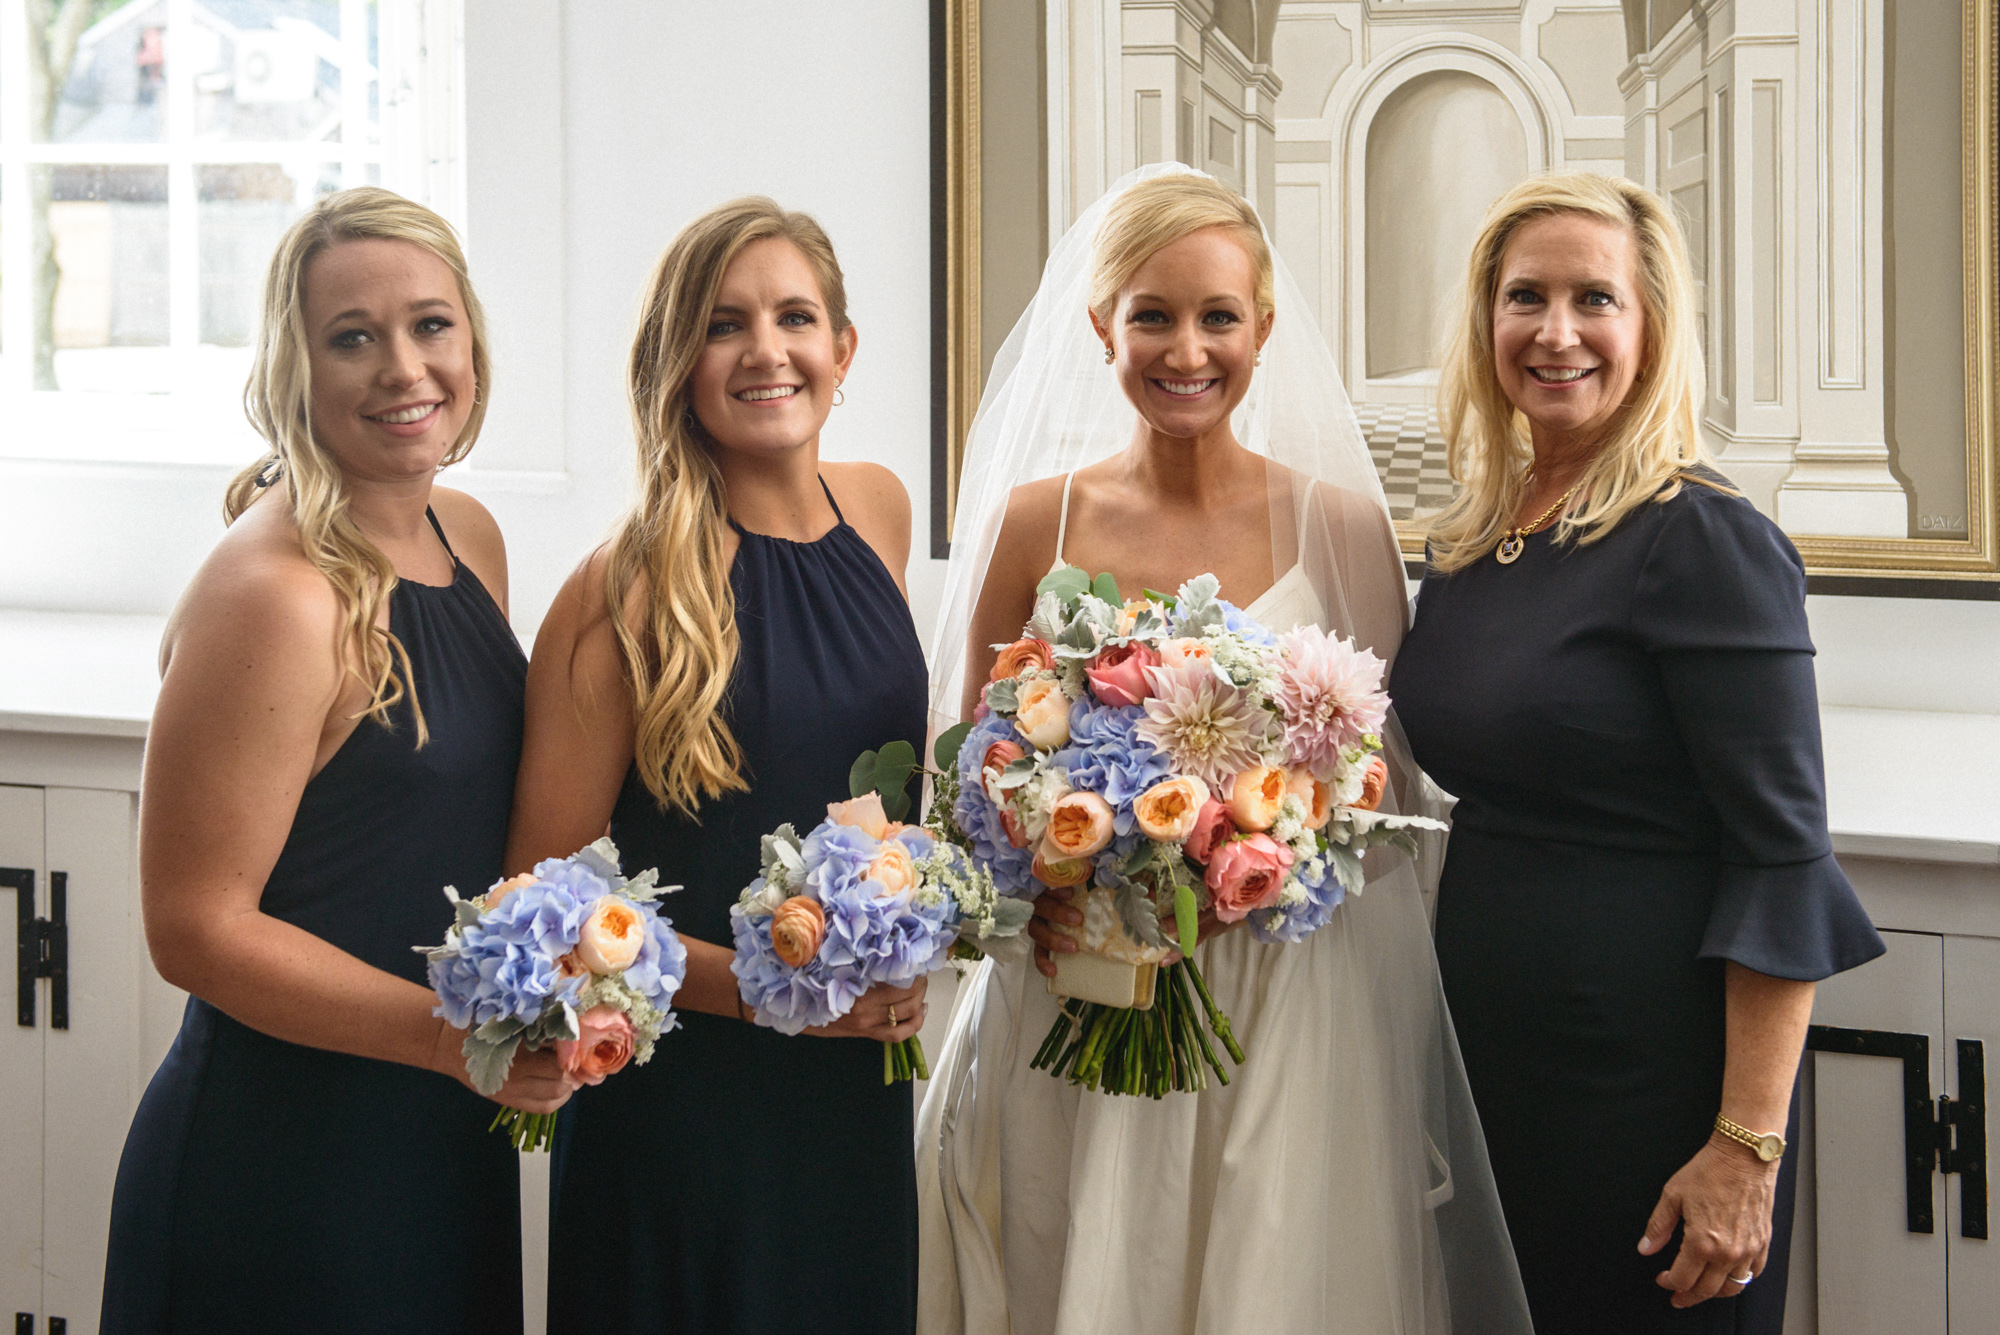 A bride and her bridesmaids inside the Old Whaling Church in Edgartown  photo by David Welch Photography